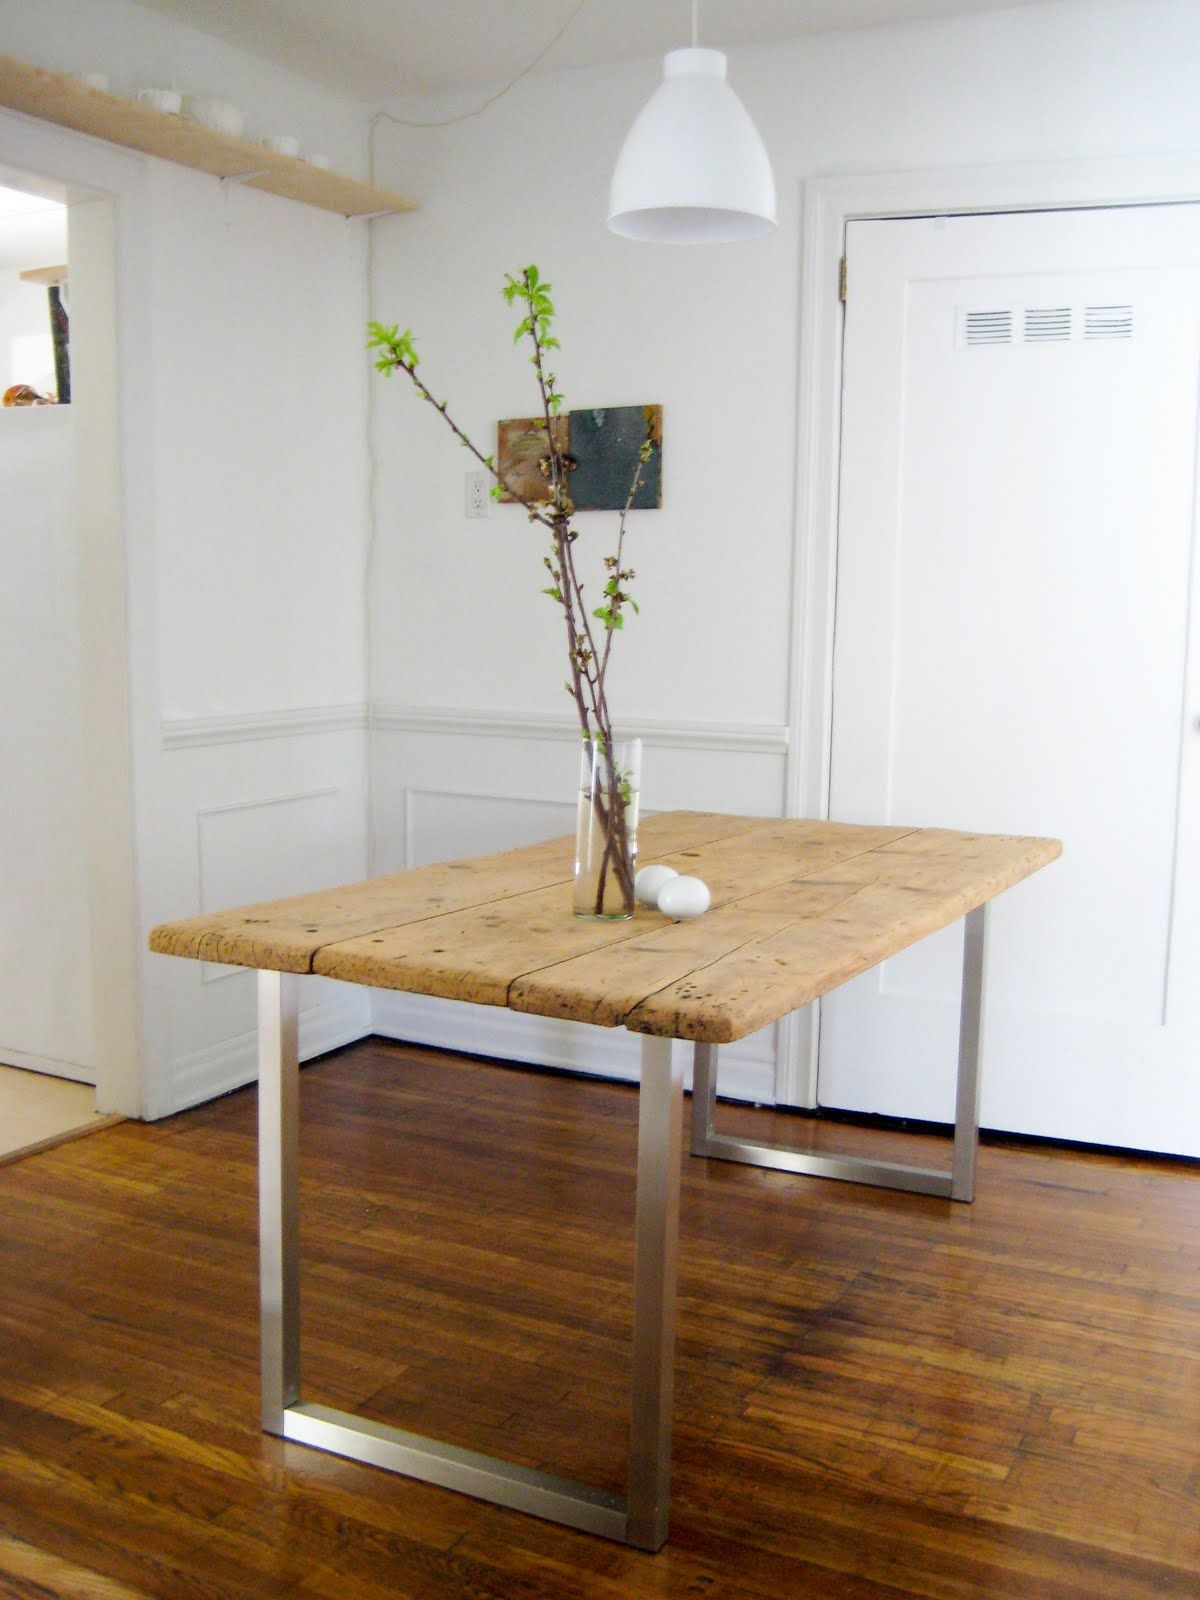 Old nasty kitchen table from the classifieds ikea legs vika moliden underframe amazing - Ikea rustic dining table ...